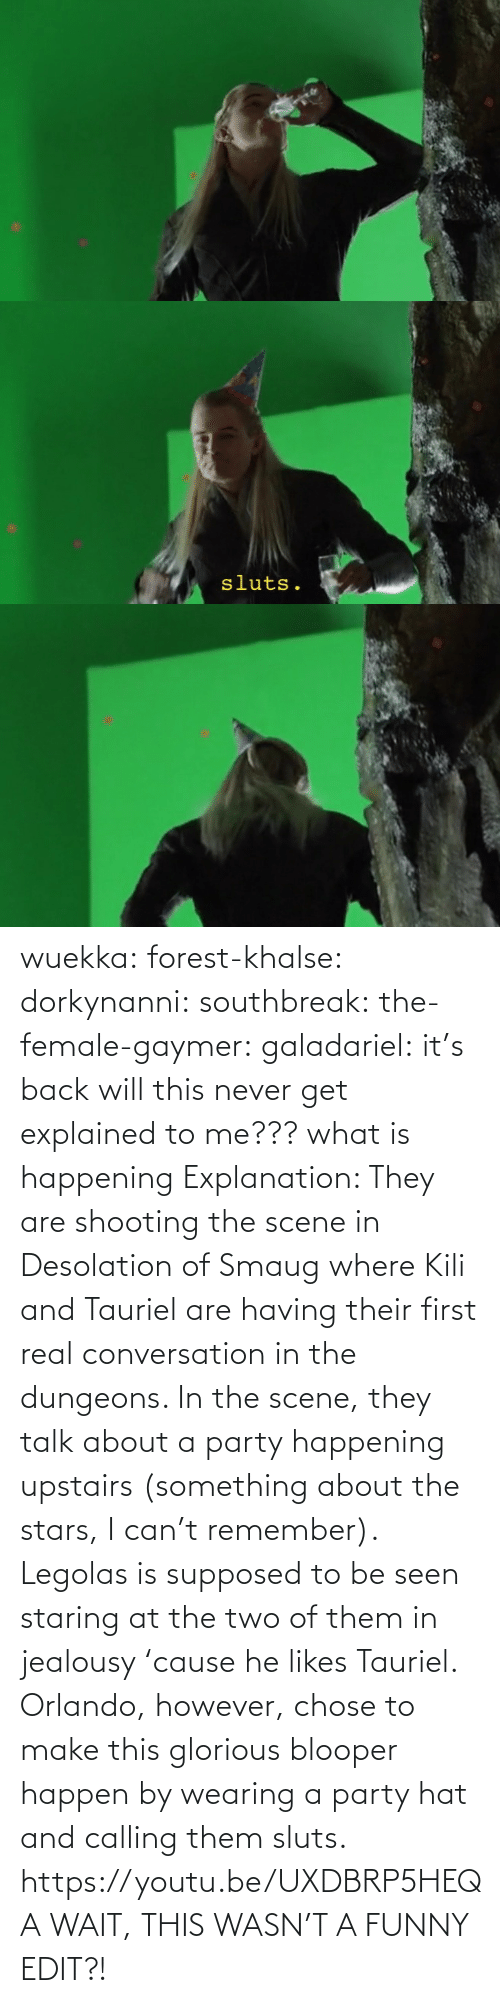 forest: wuekka:  forest-khalse:   dorkynanni:  southbreak:   the-female-gaymer:   galadariel:  it's back   will this never get explained to me???    what is happening    Explanation:  They are shooting the scene in Desolation of Smaug where Kili and Tauriel are having their first real conversation in the dungeons.  In the scene, they talk about a party happening upstairs (something about the stars, I can't remember). Legolas is supposed to be seen staring at the two of them in jealousy 'cause he likes Tauriel.  Orlando, however, chose to make this glorious blooper happen by wearing a party hat and calling them sluts.    https://youtu.be/UXDBRP5HEQA    WAIT, THIS WASN'T A FUNNY EDIT?!